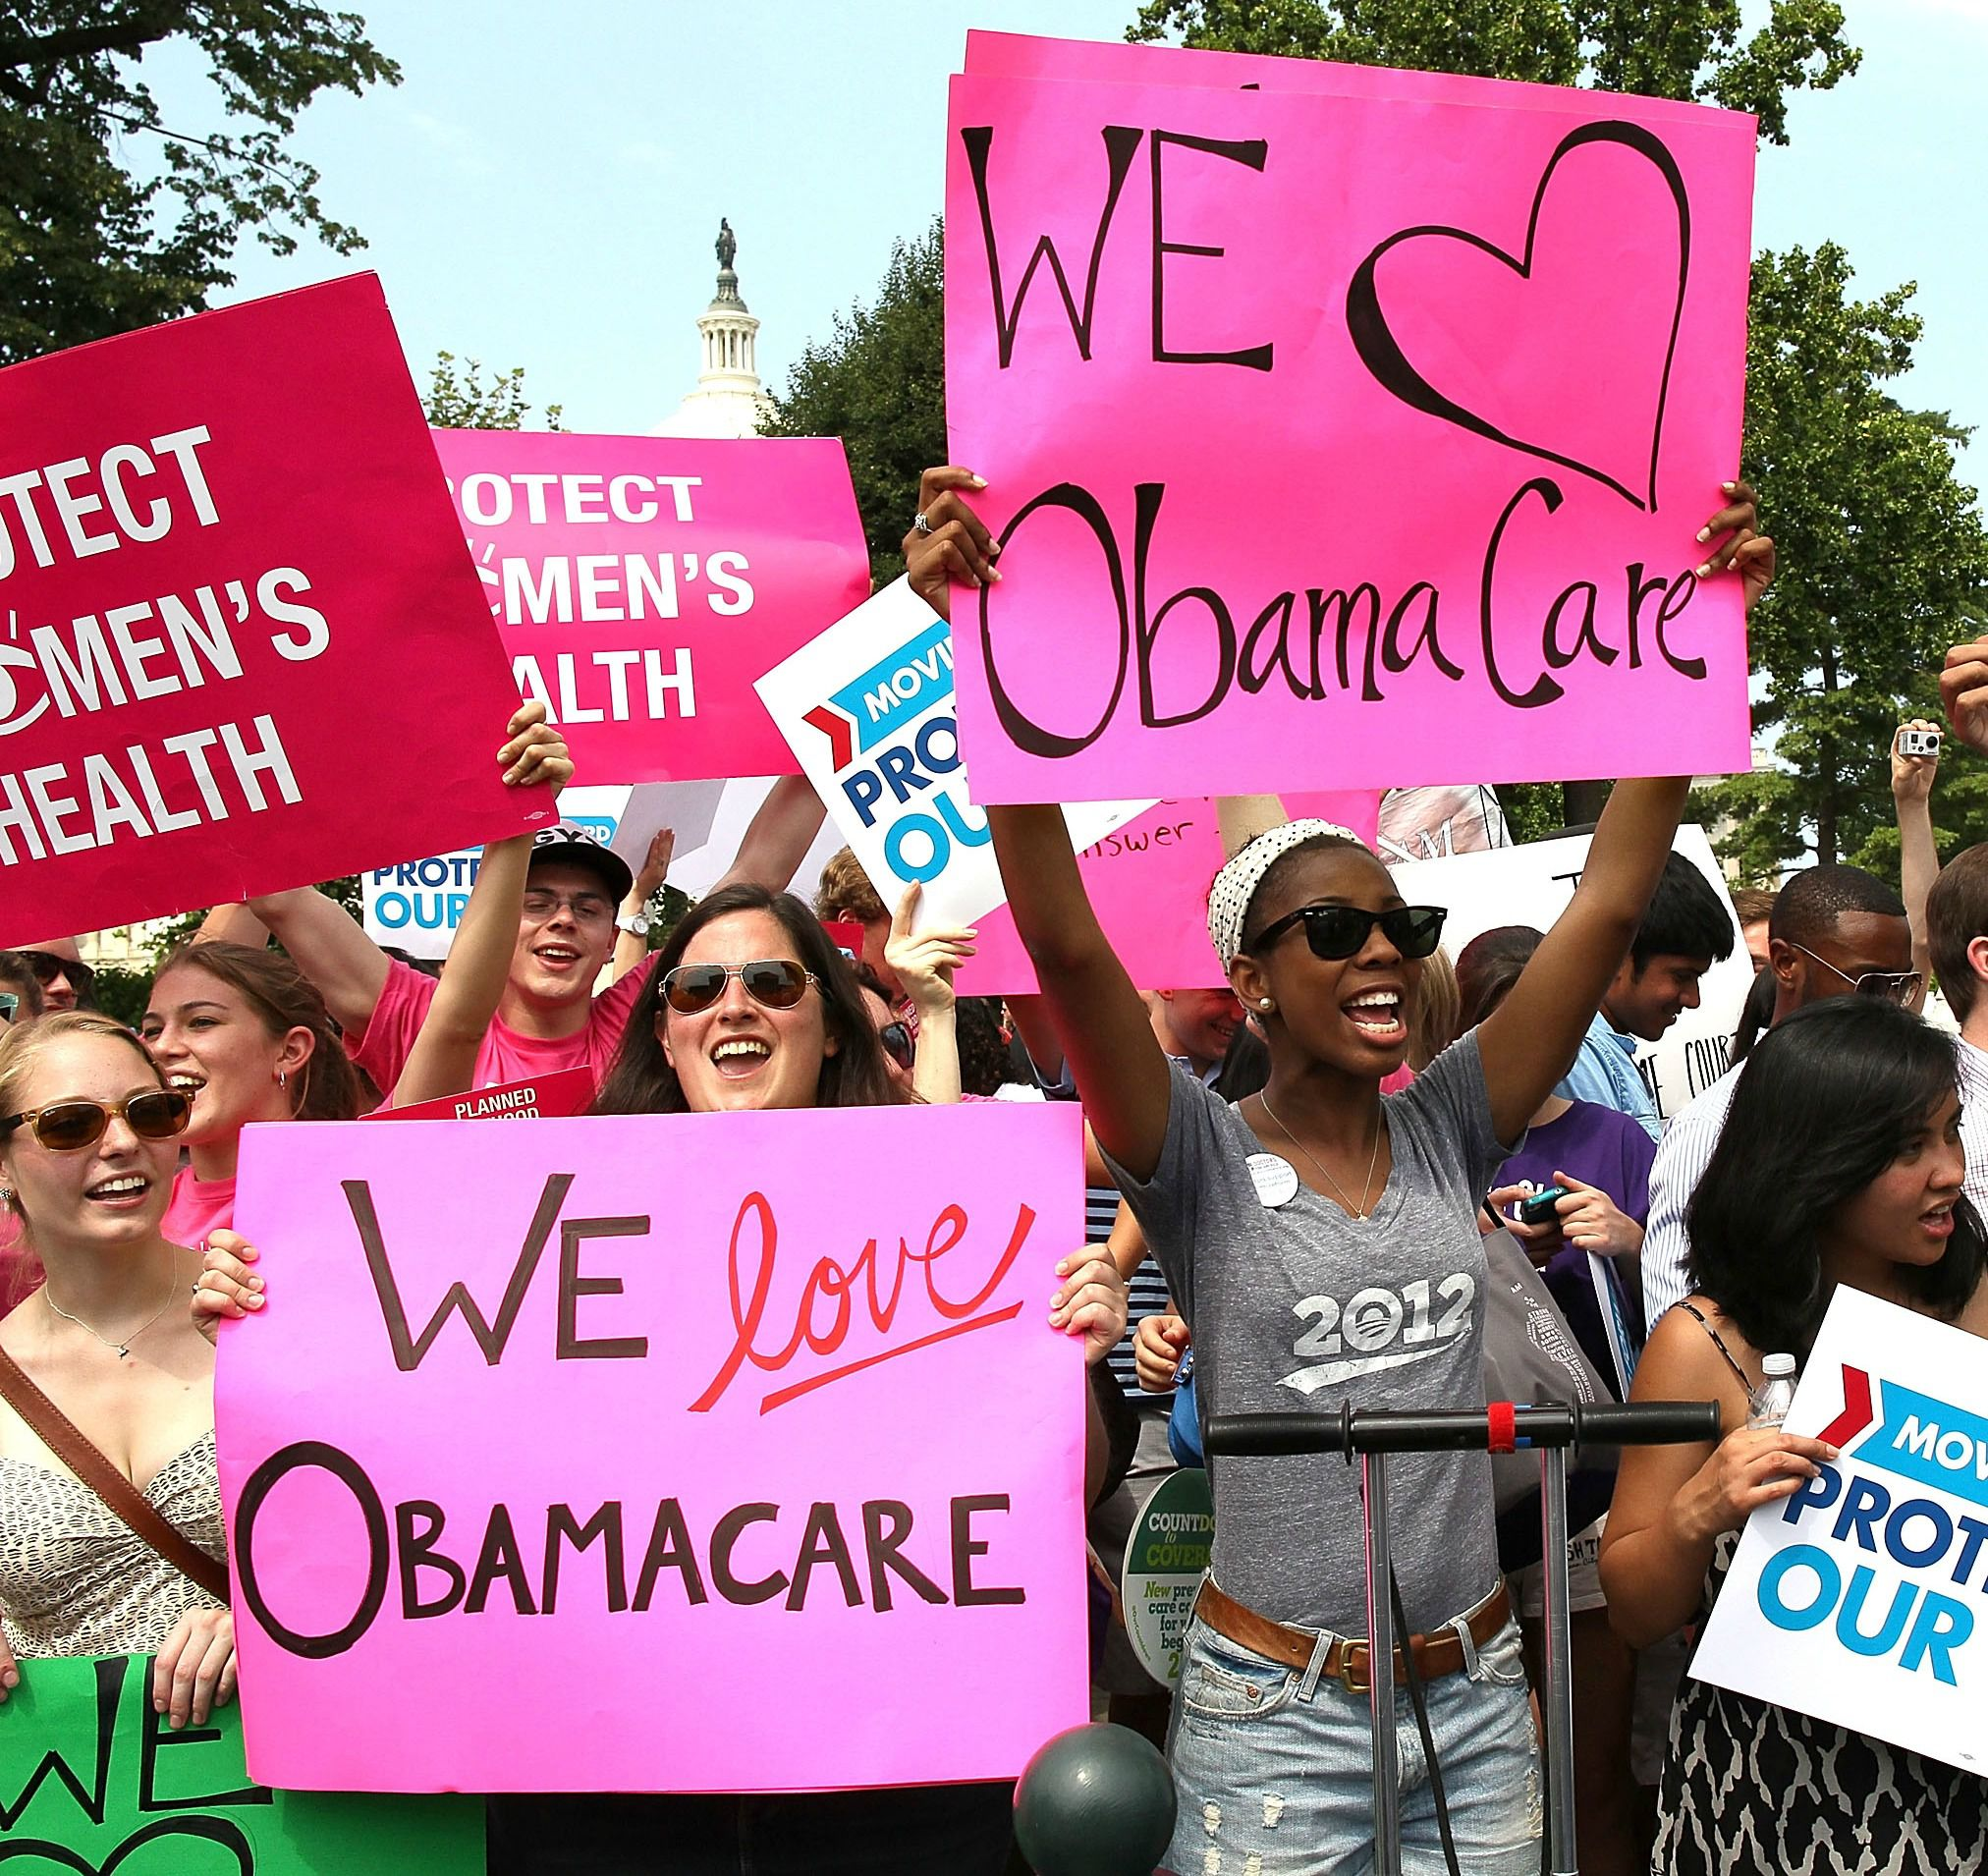 Obamacare supporters react to the U.S. Supreme Court decision to uphold President Obama?s health care law, on June 28, 2012 in Washington, DC.